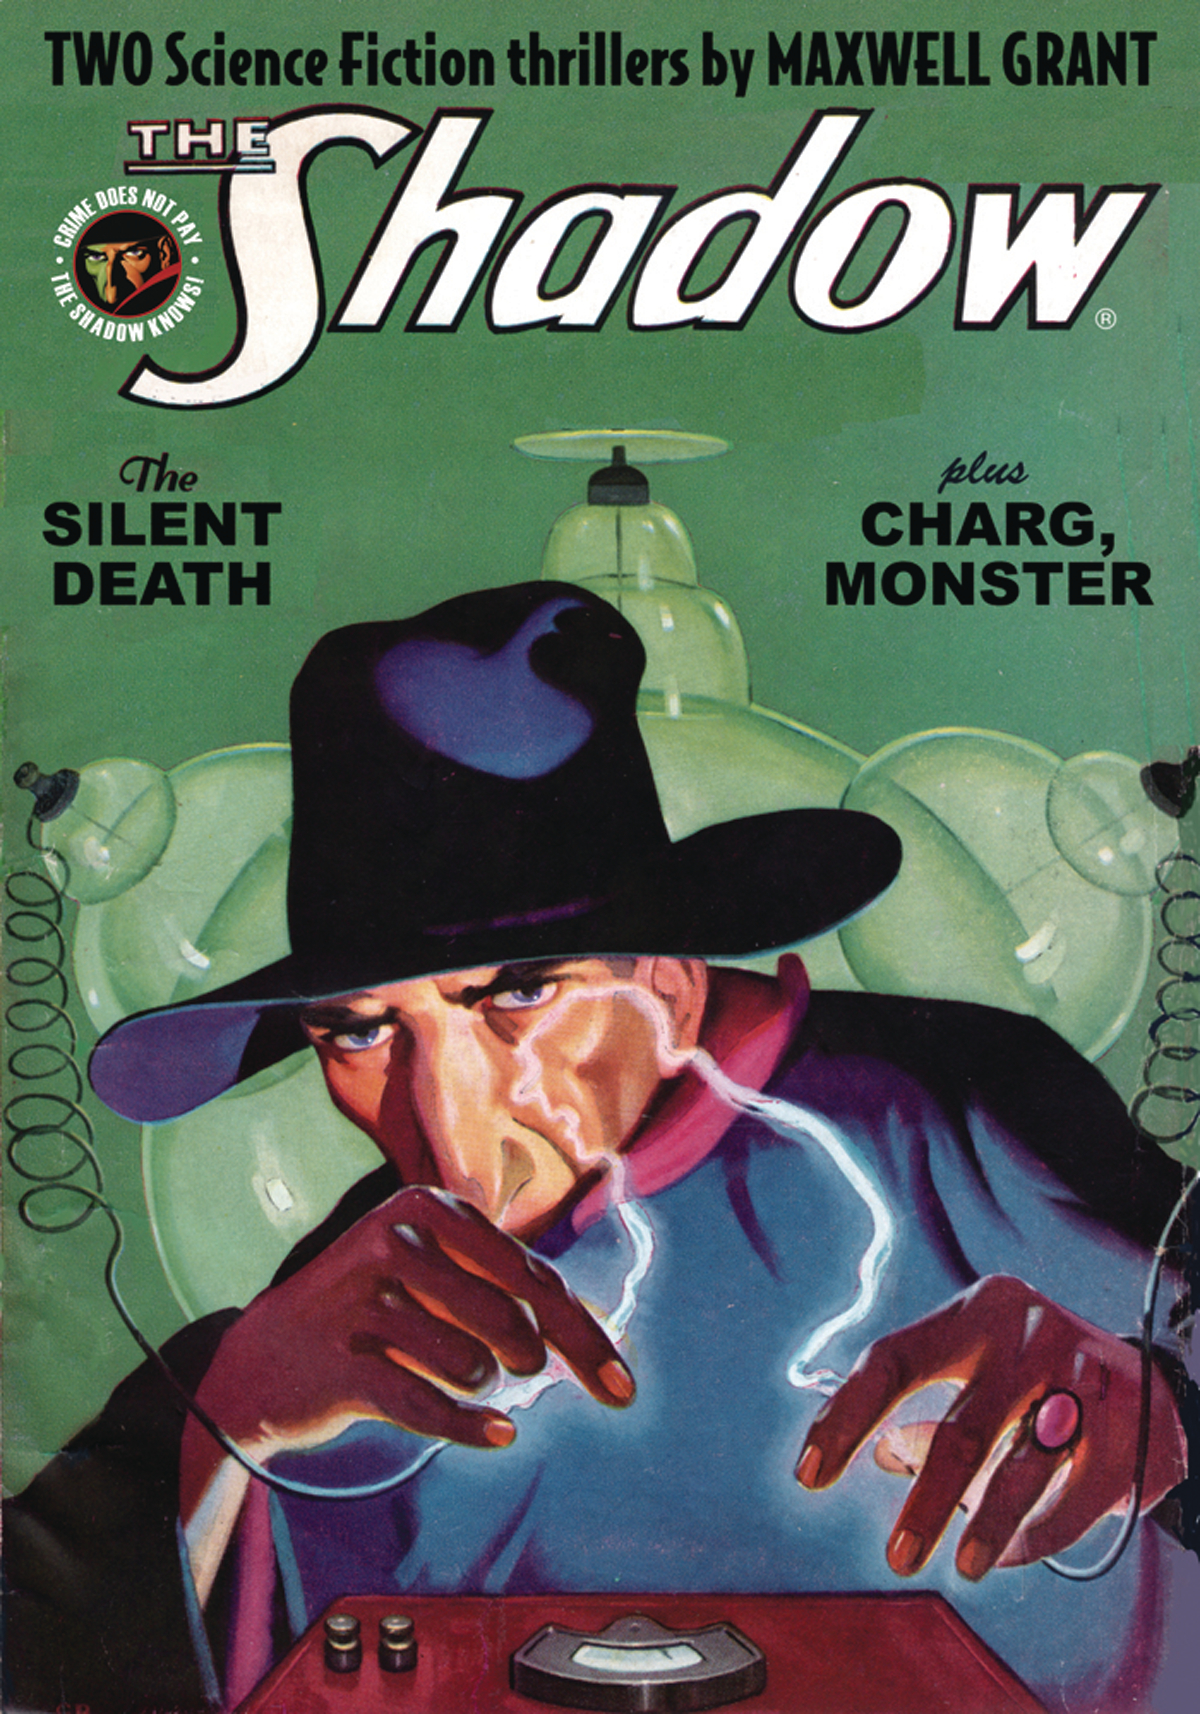 SHADOW DOUBLE NOVEL VOL 127 SILENT DEATH & CHARG MONSTER